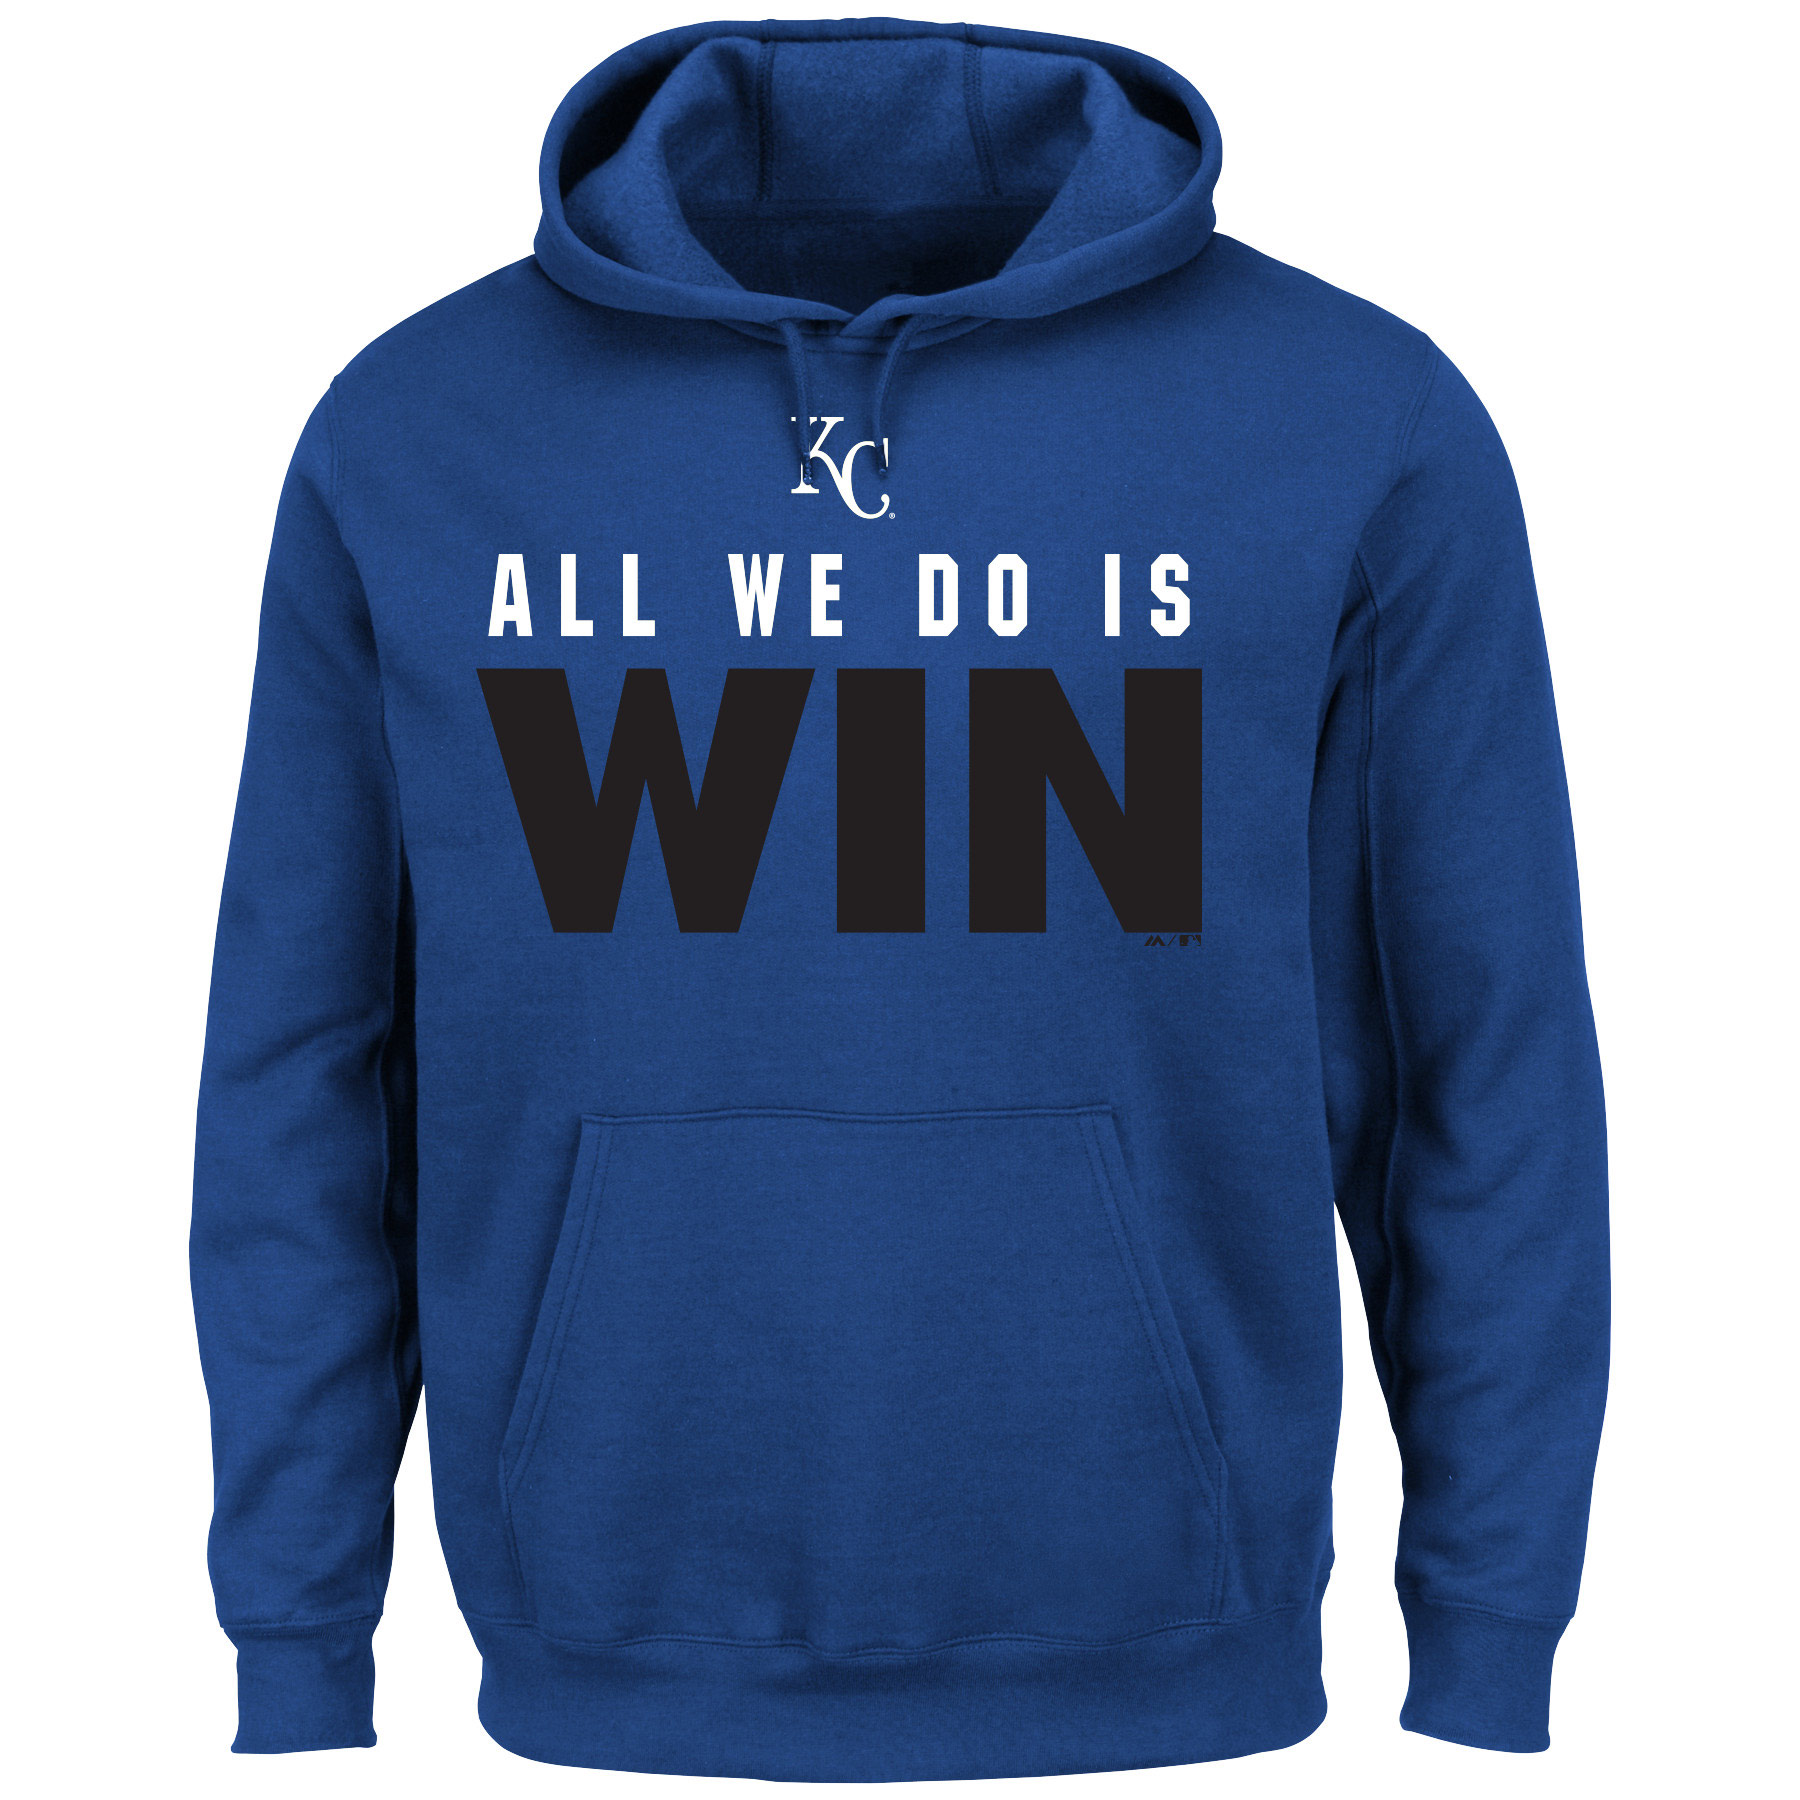 Kansas City Royals Majestic All We Do Is Win Pullover Hoodie - Royal